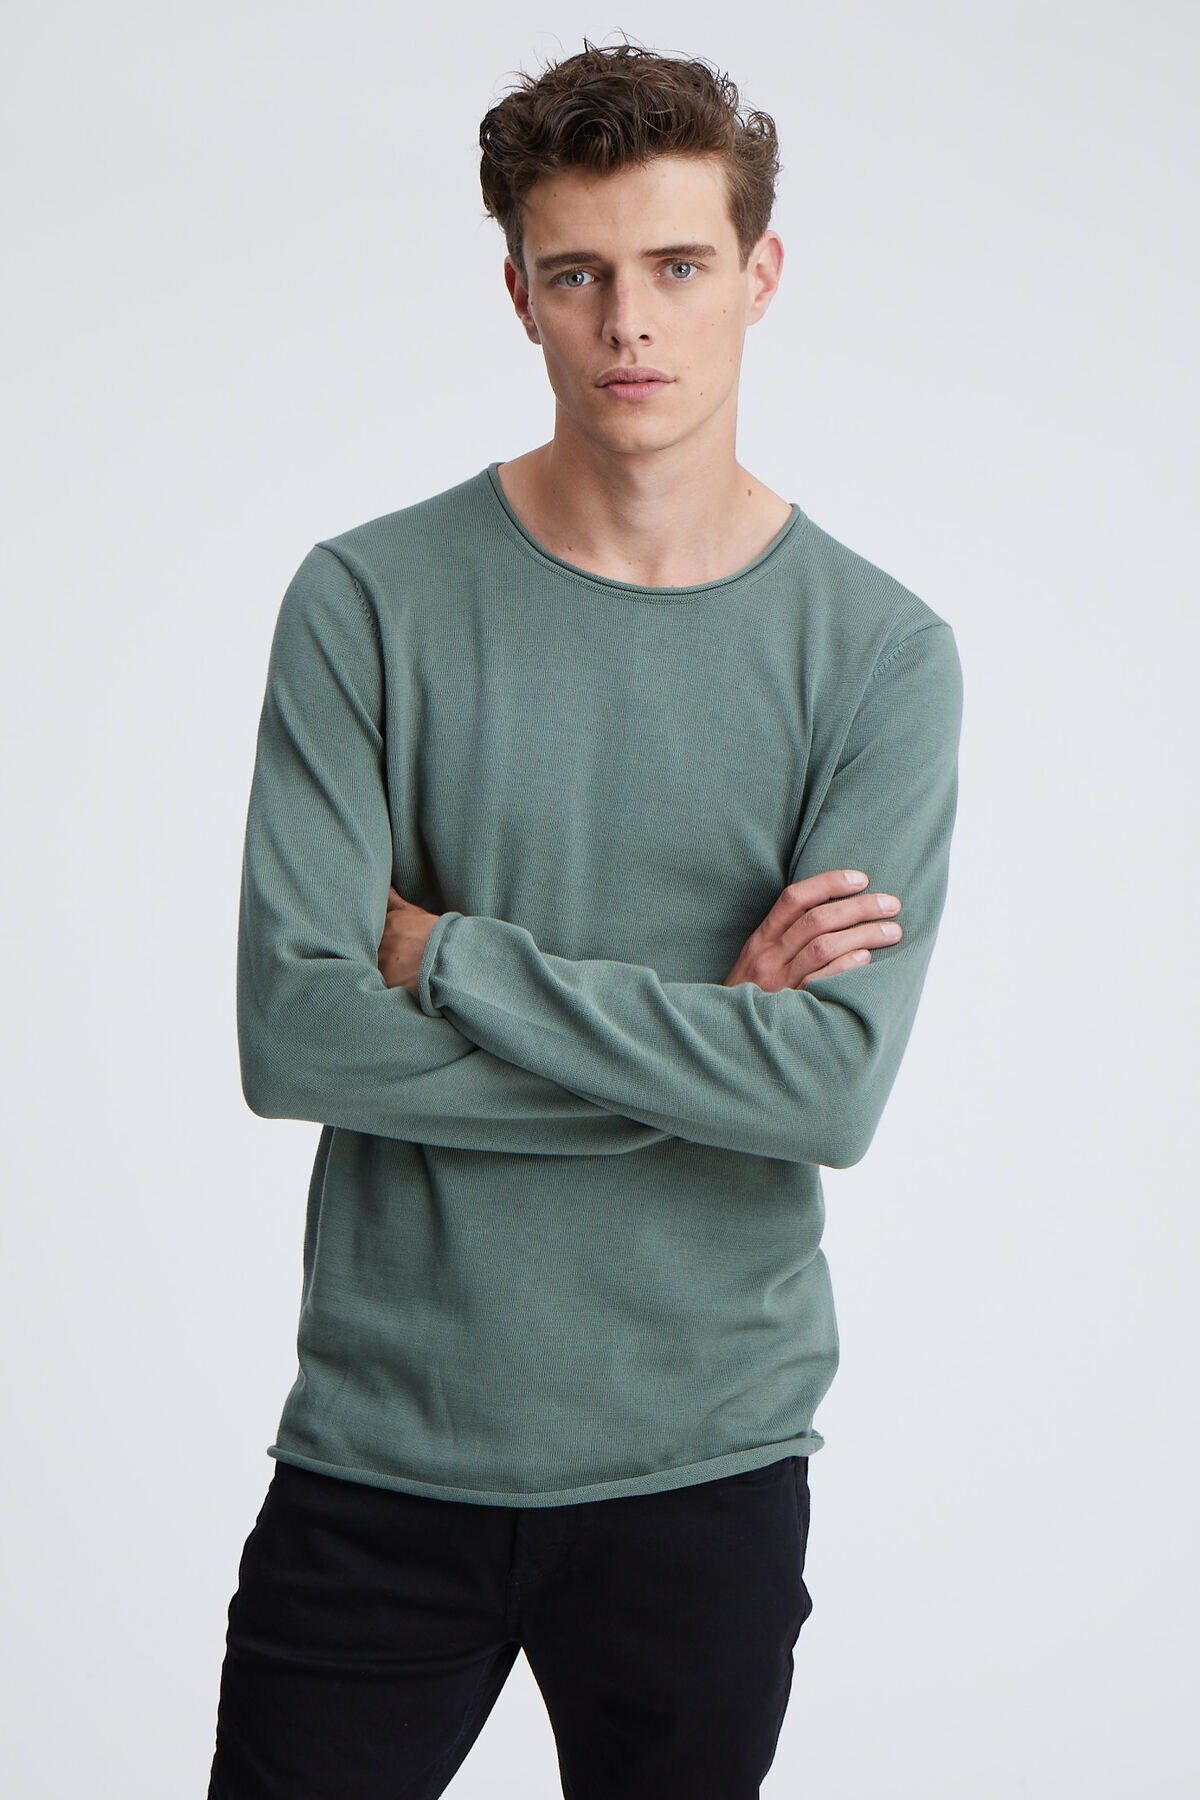 INGO KNIT RAW EDGE Cotton Yarn - Regular Fit